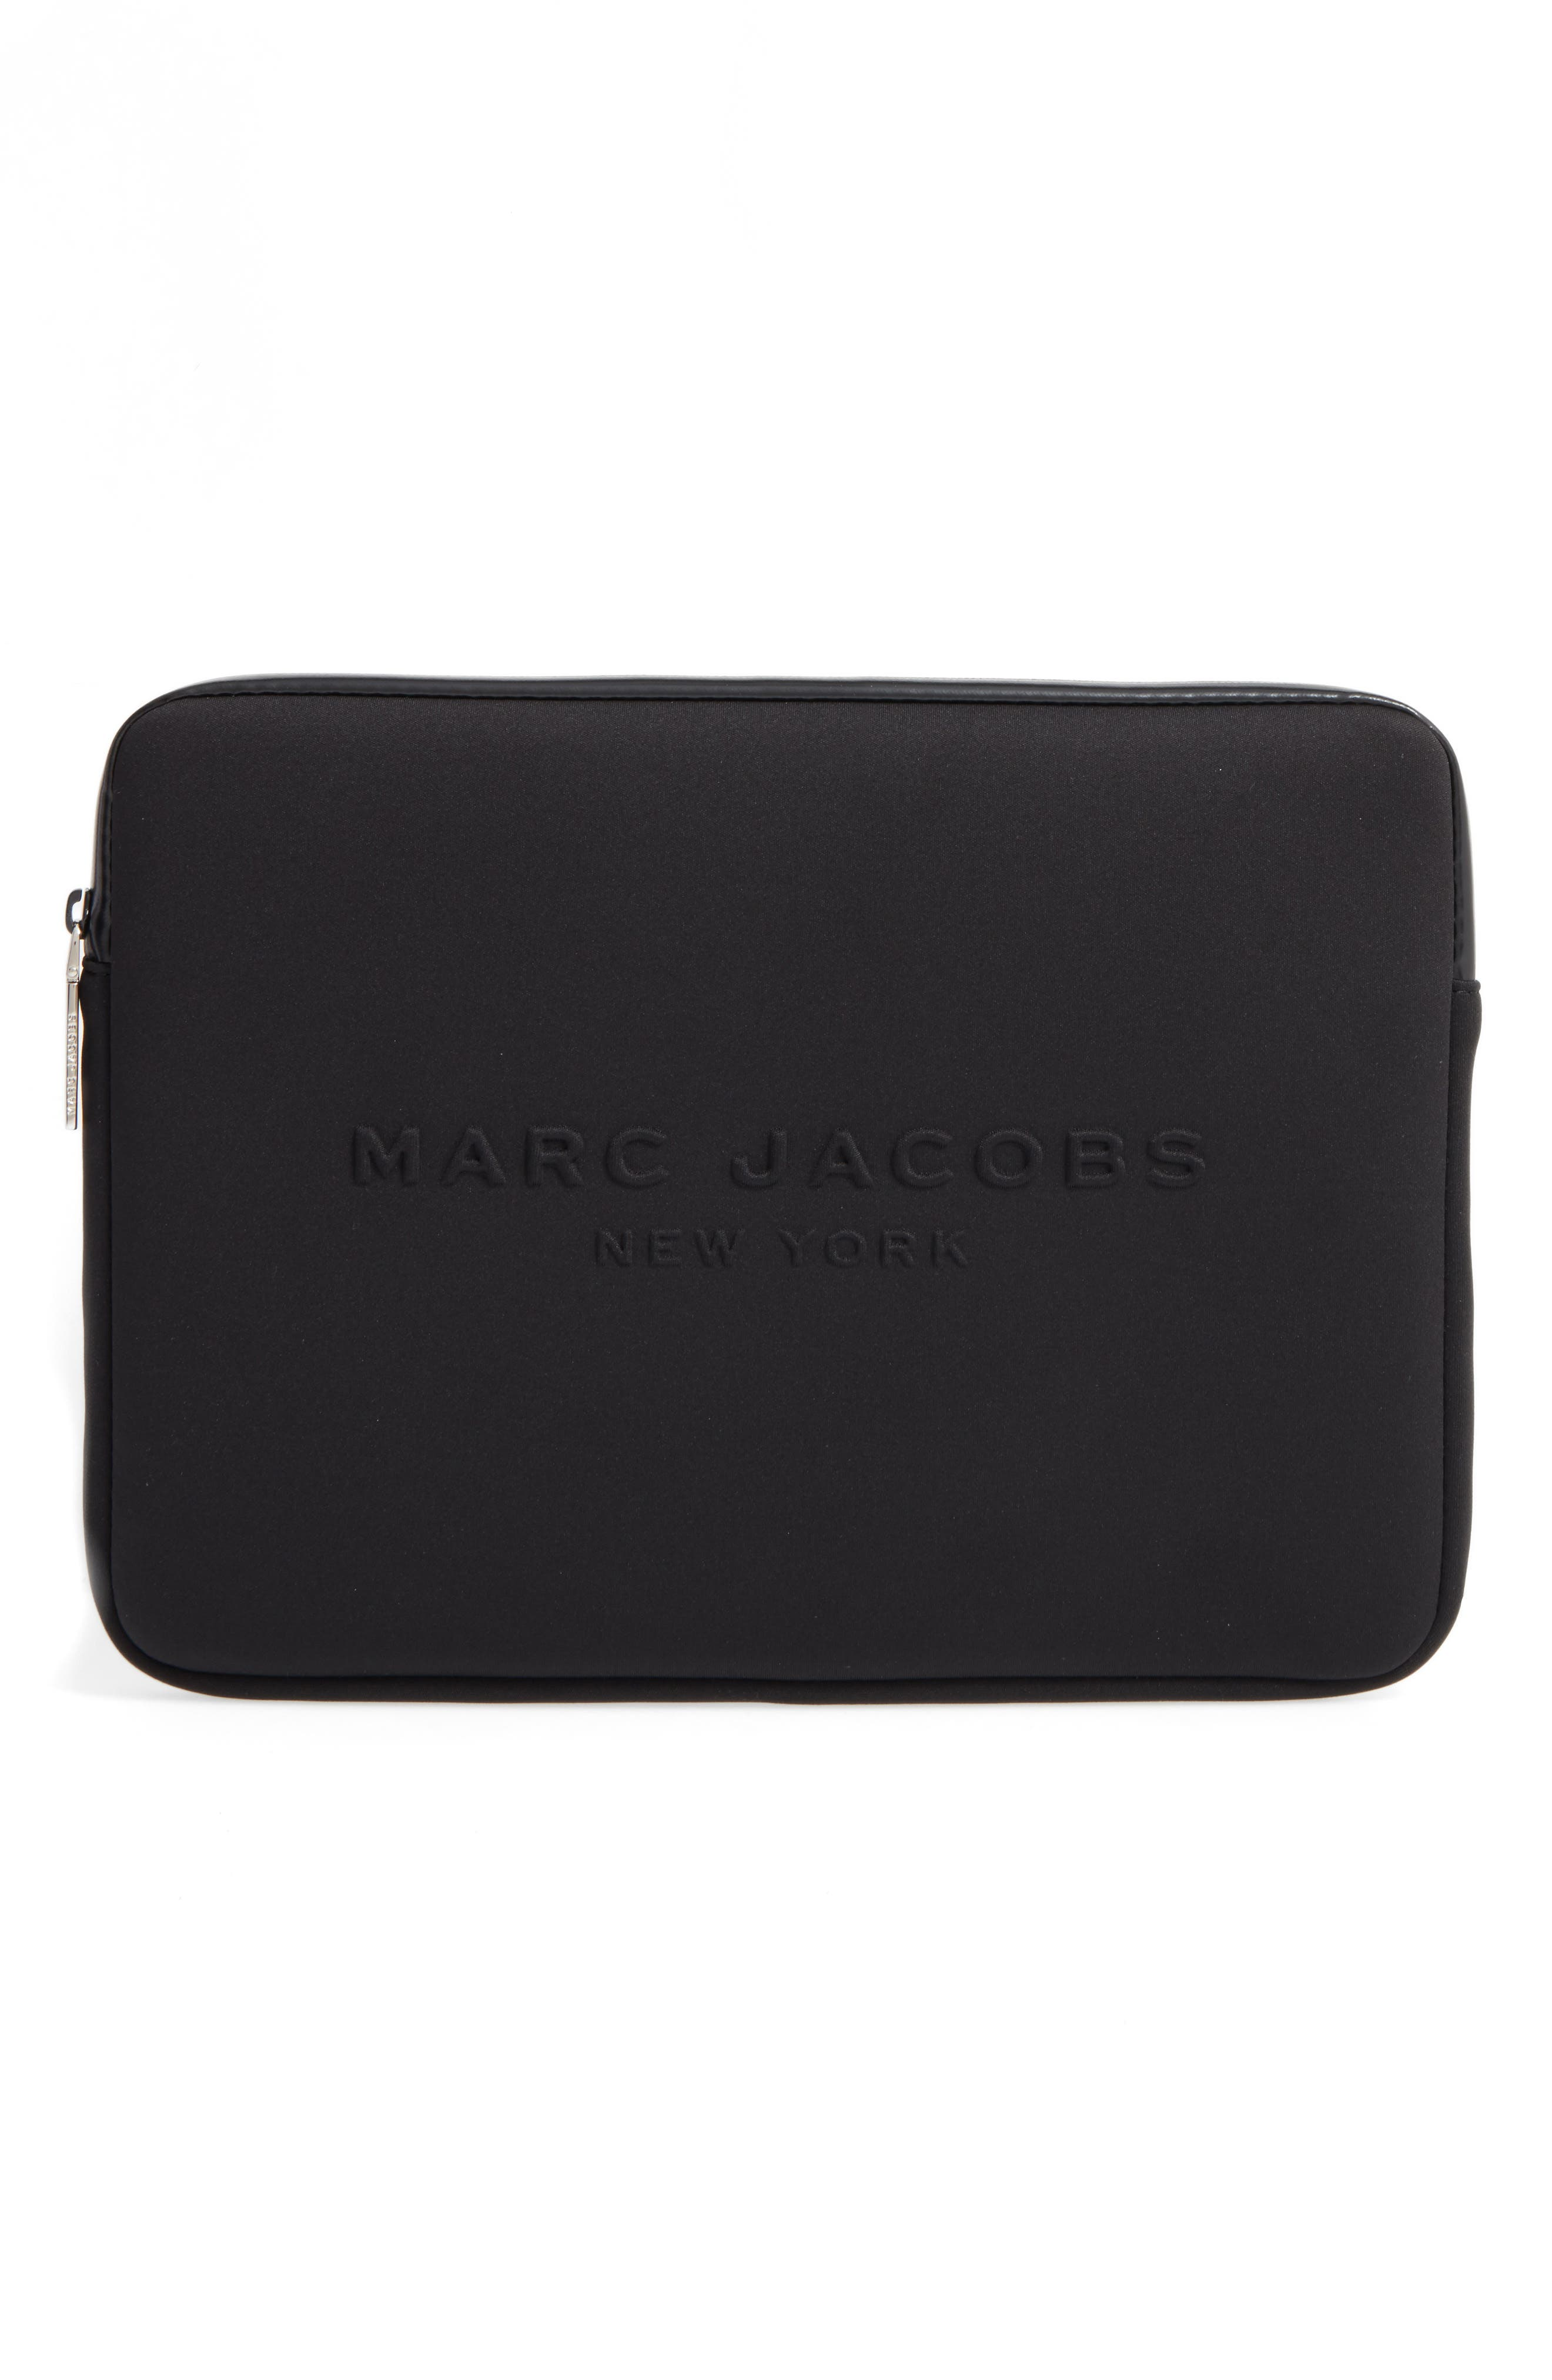 13 Inch Laptop Sleeve, Main, color, 001